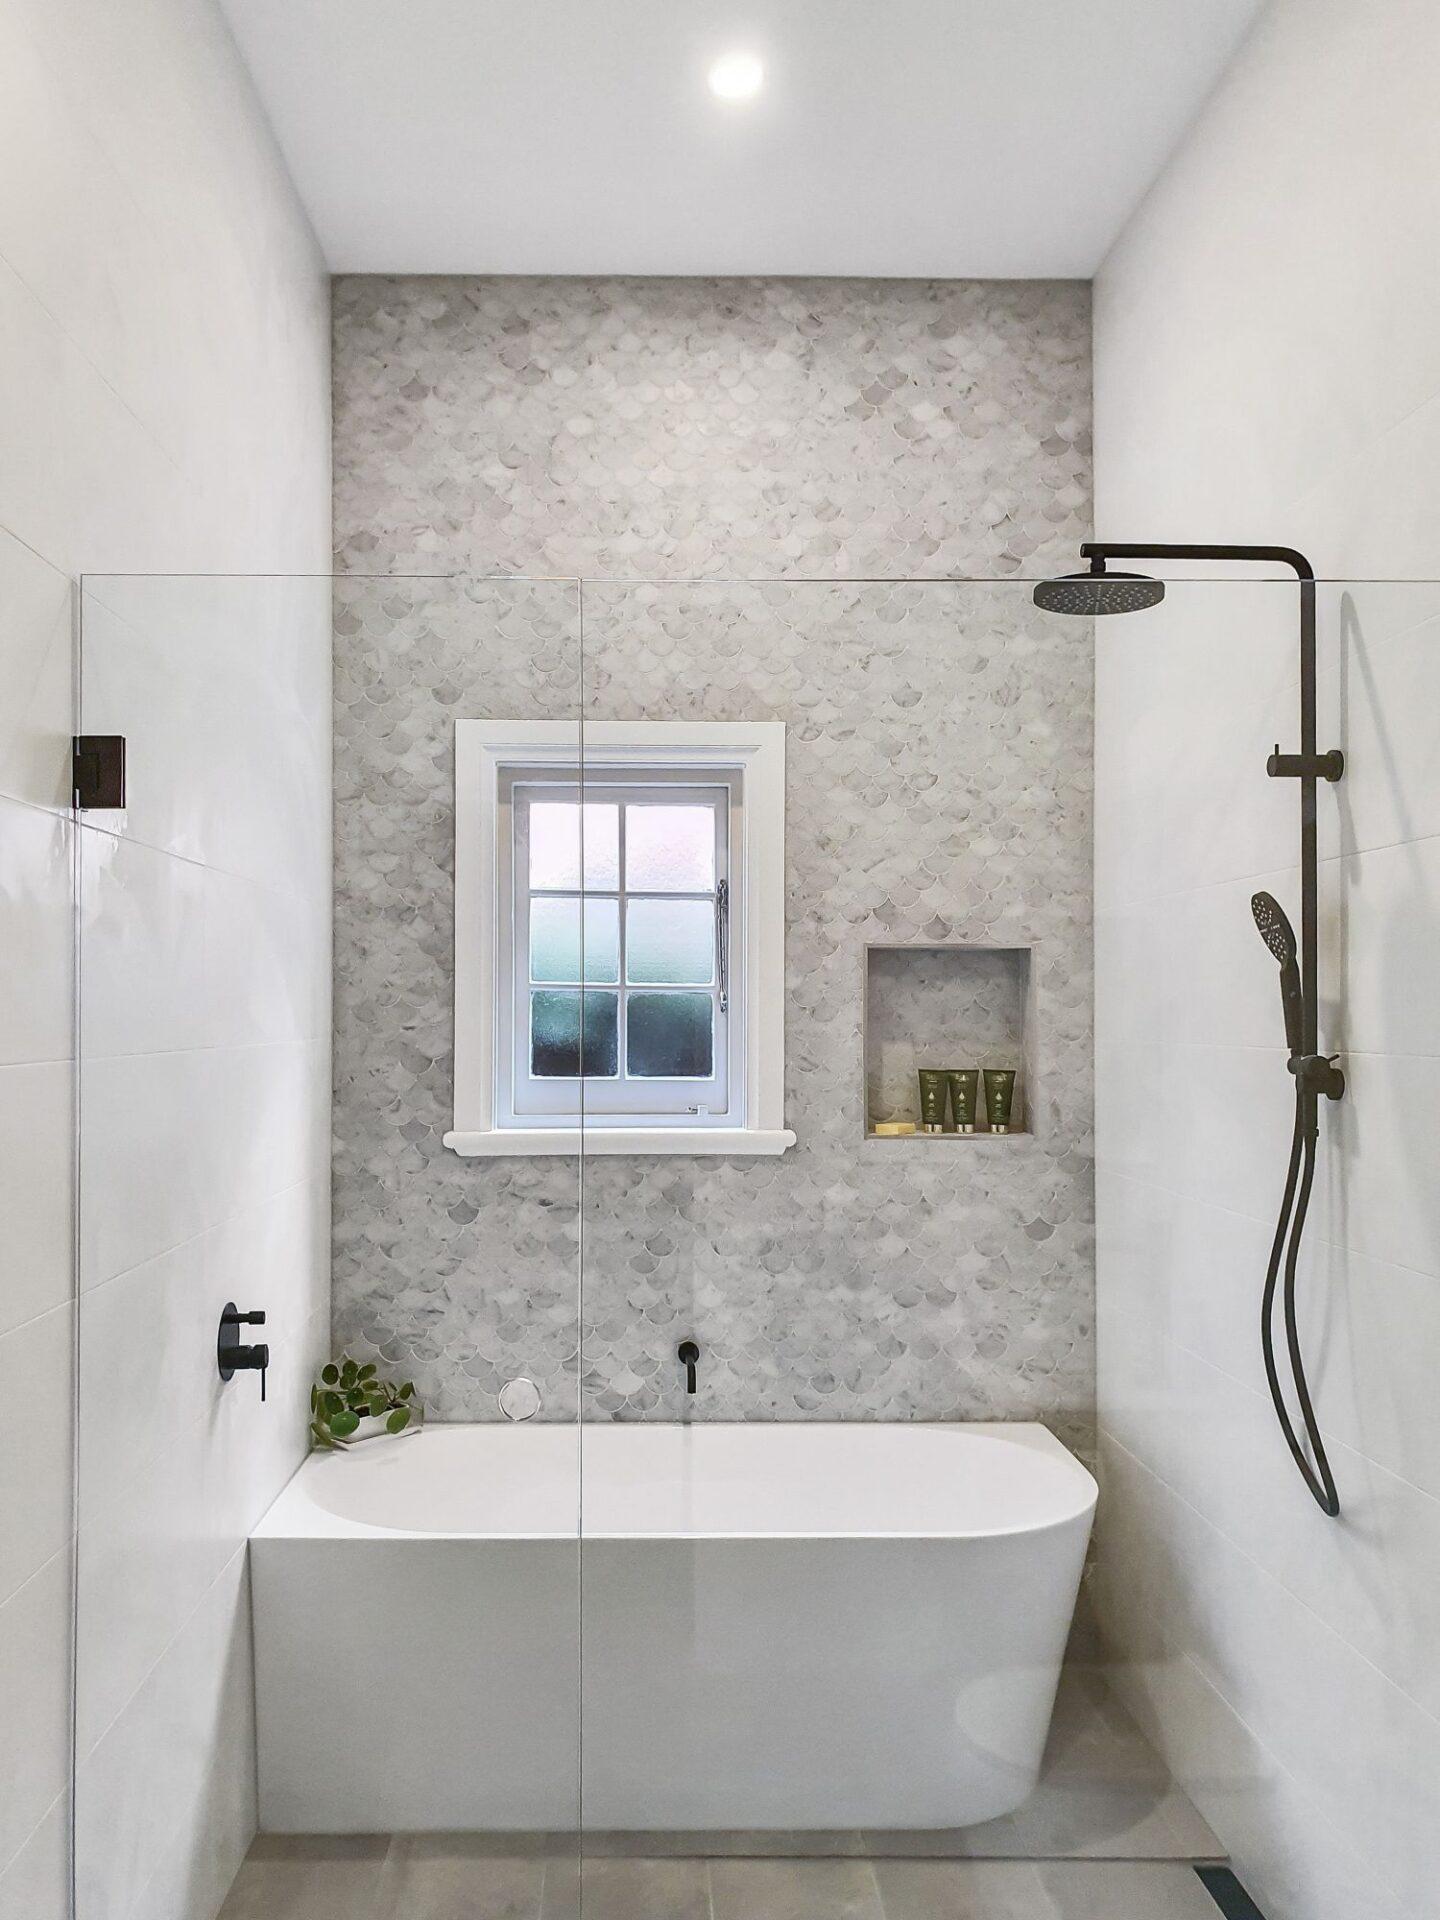 Bathtub & Shower Renovations Services by Bayview Renovations